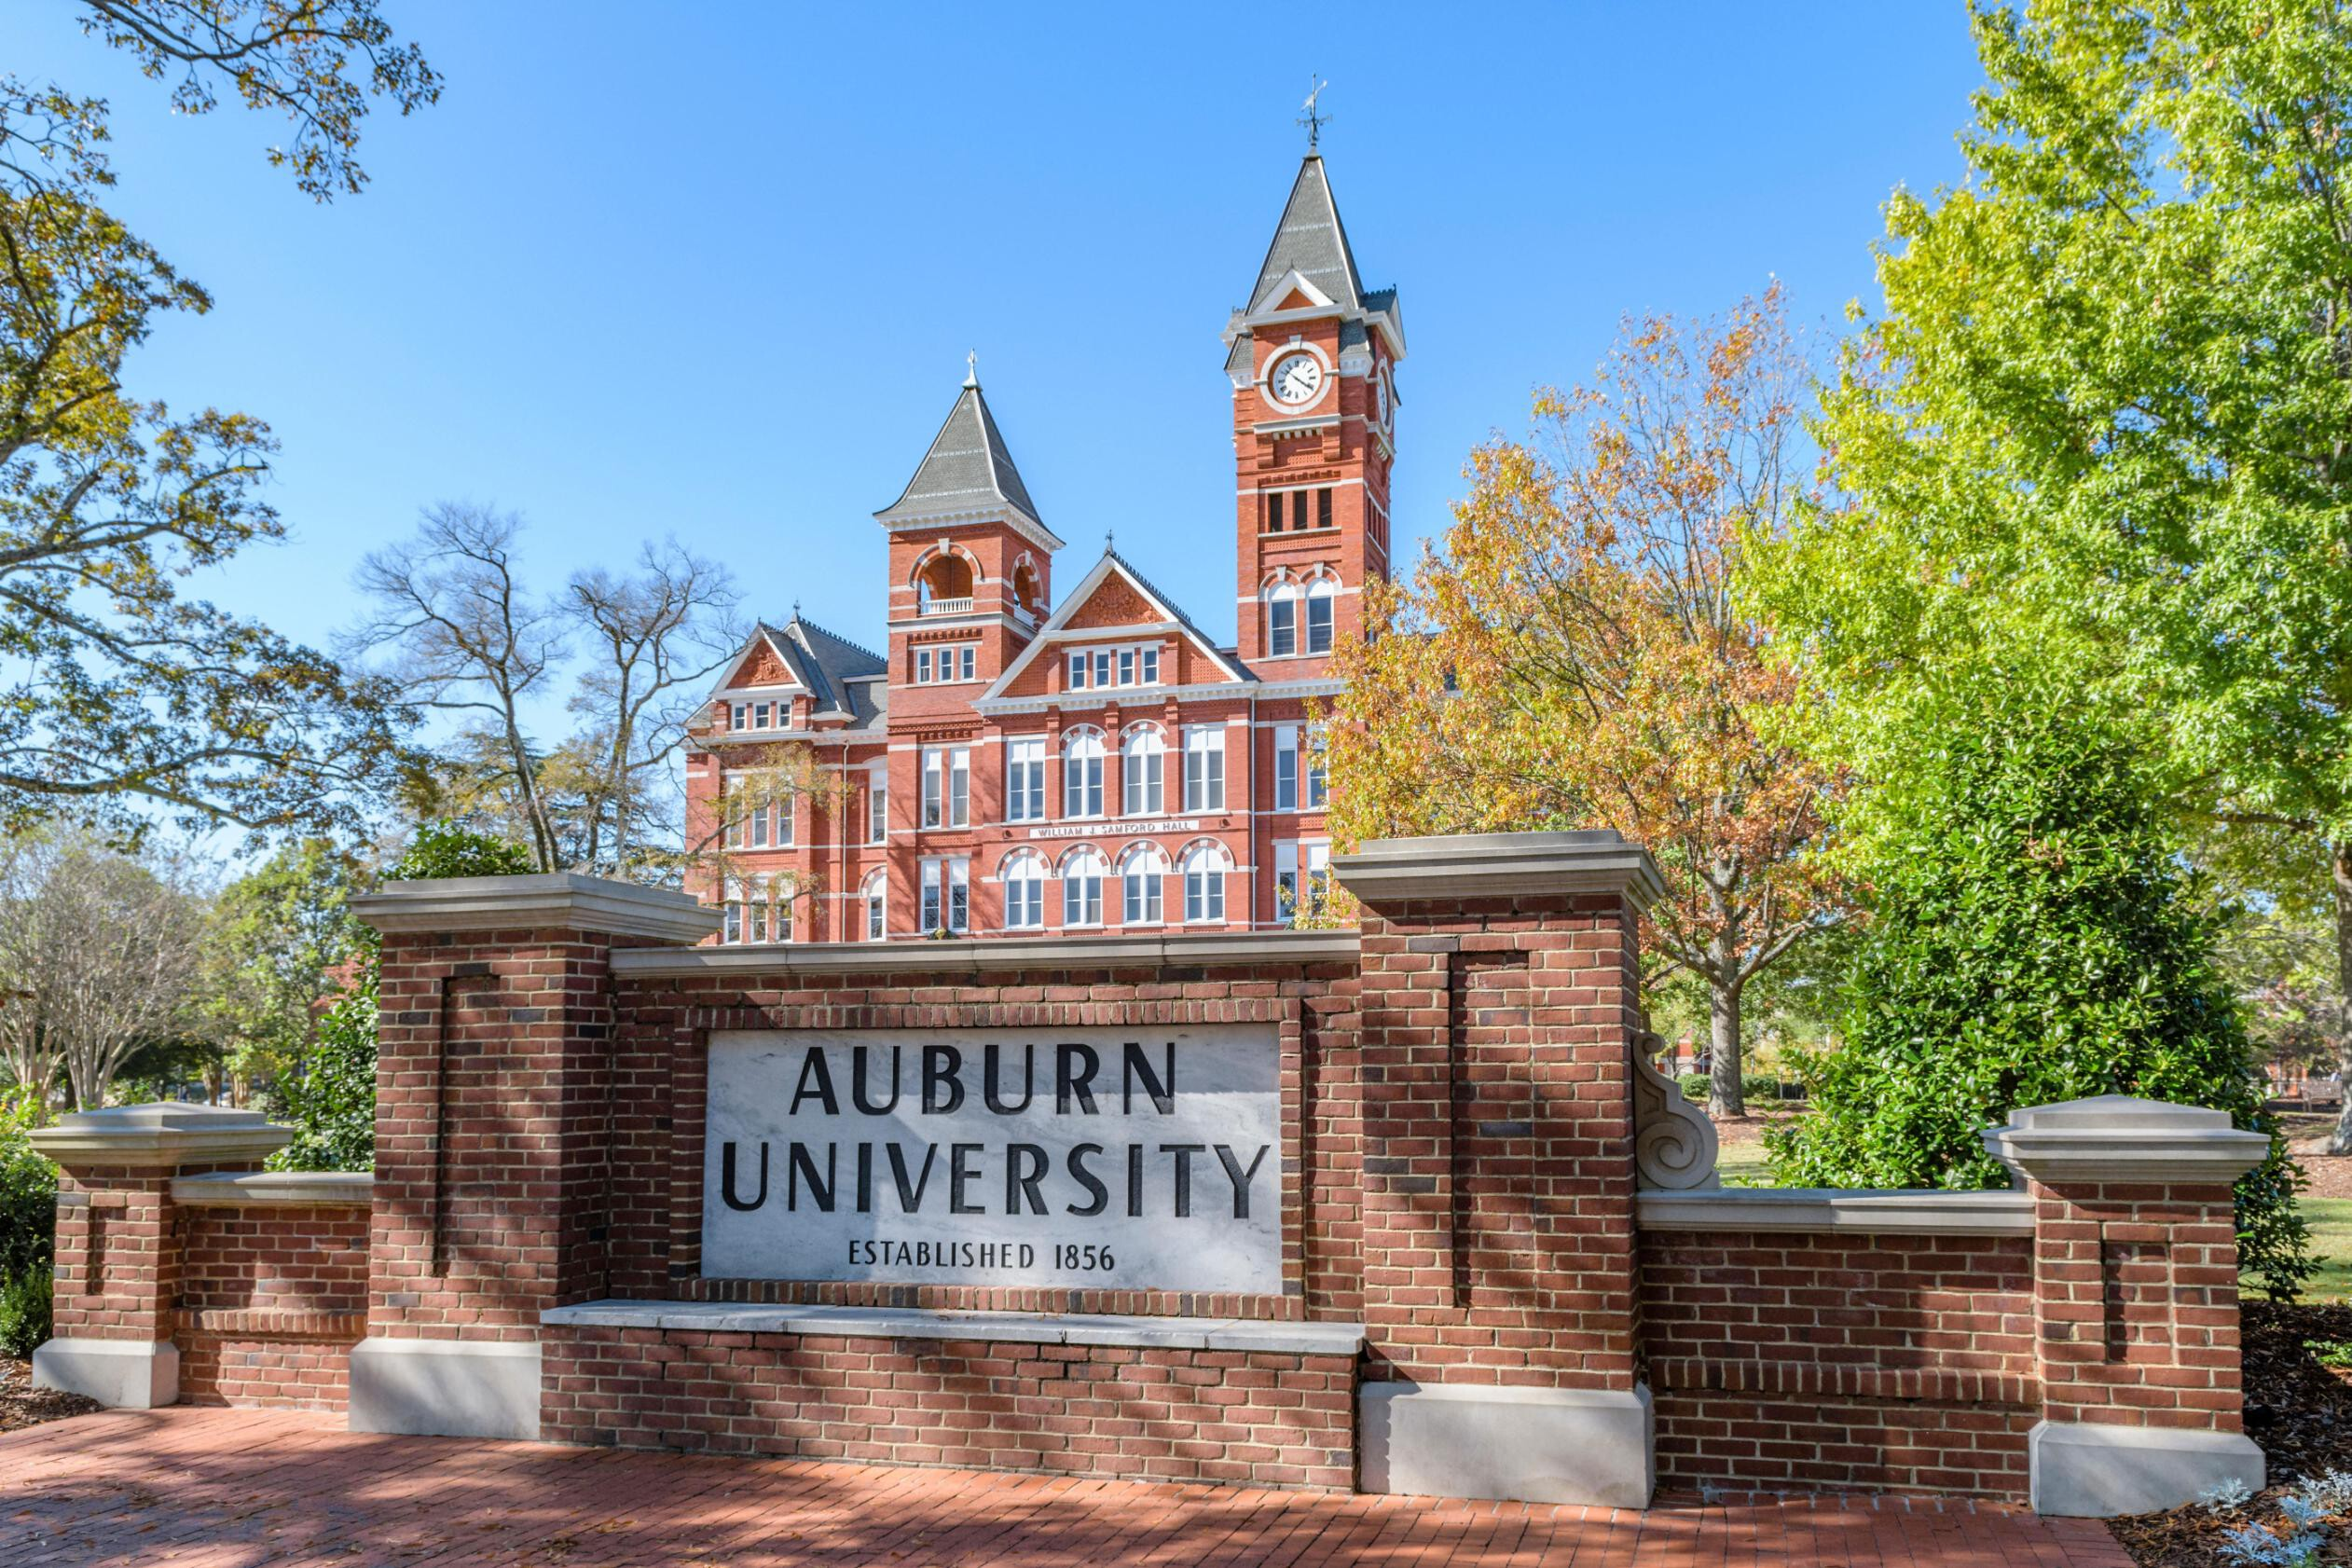 <i>Rick Lewis/Alamy</i><br/>Auburn University is offering prizes to encourage students to get vaccinated.